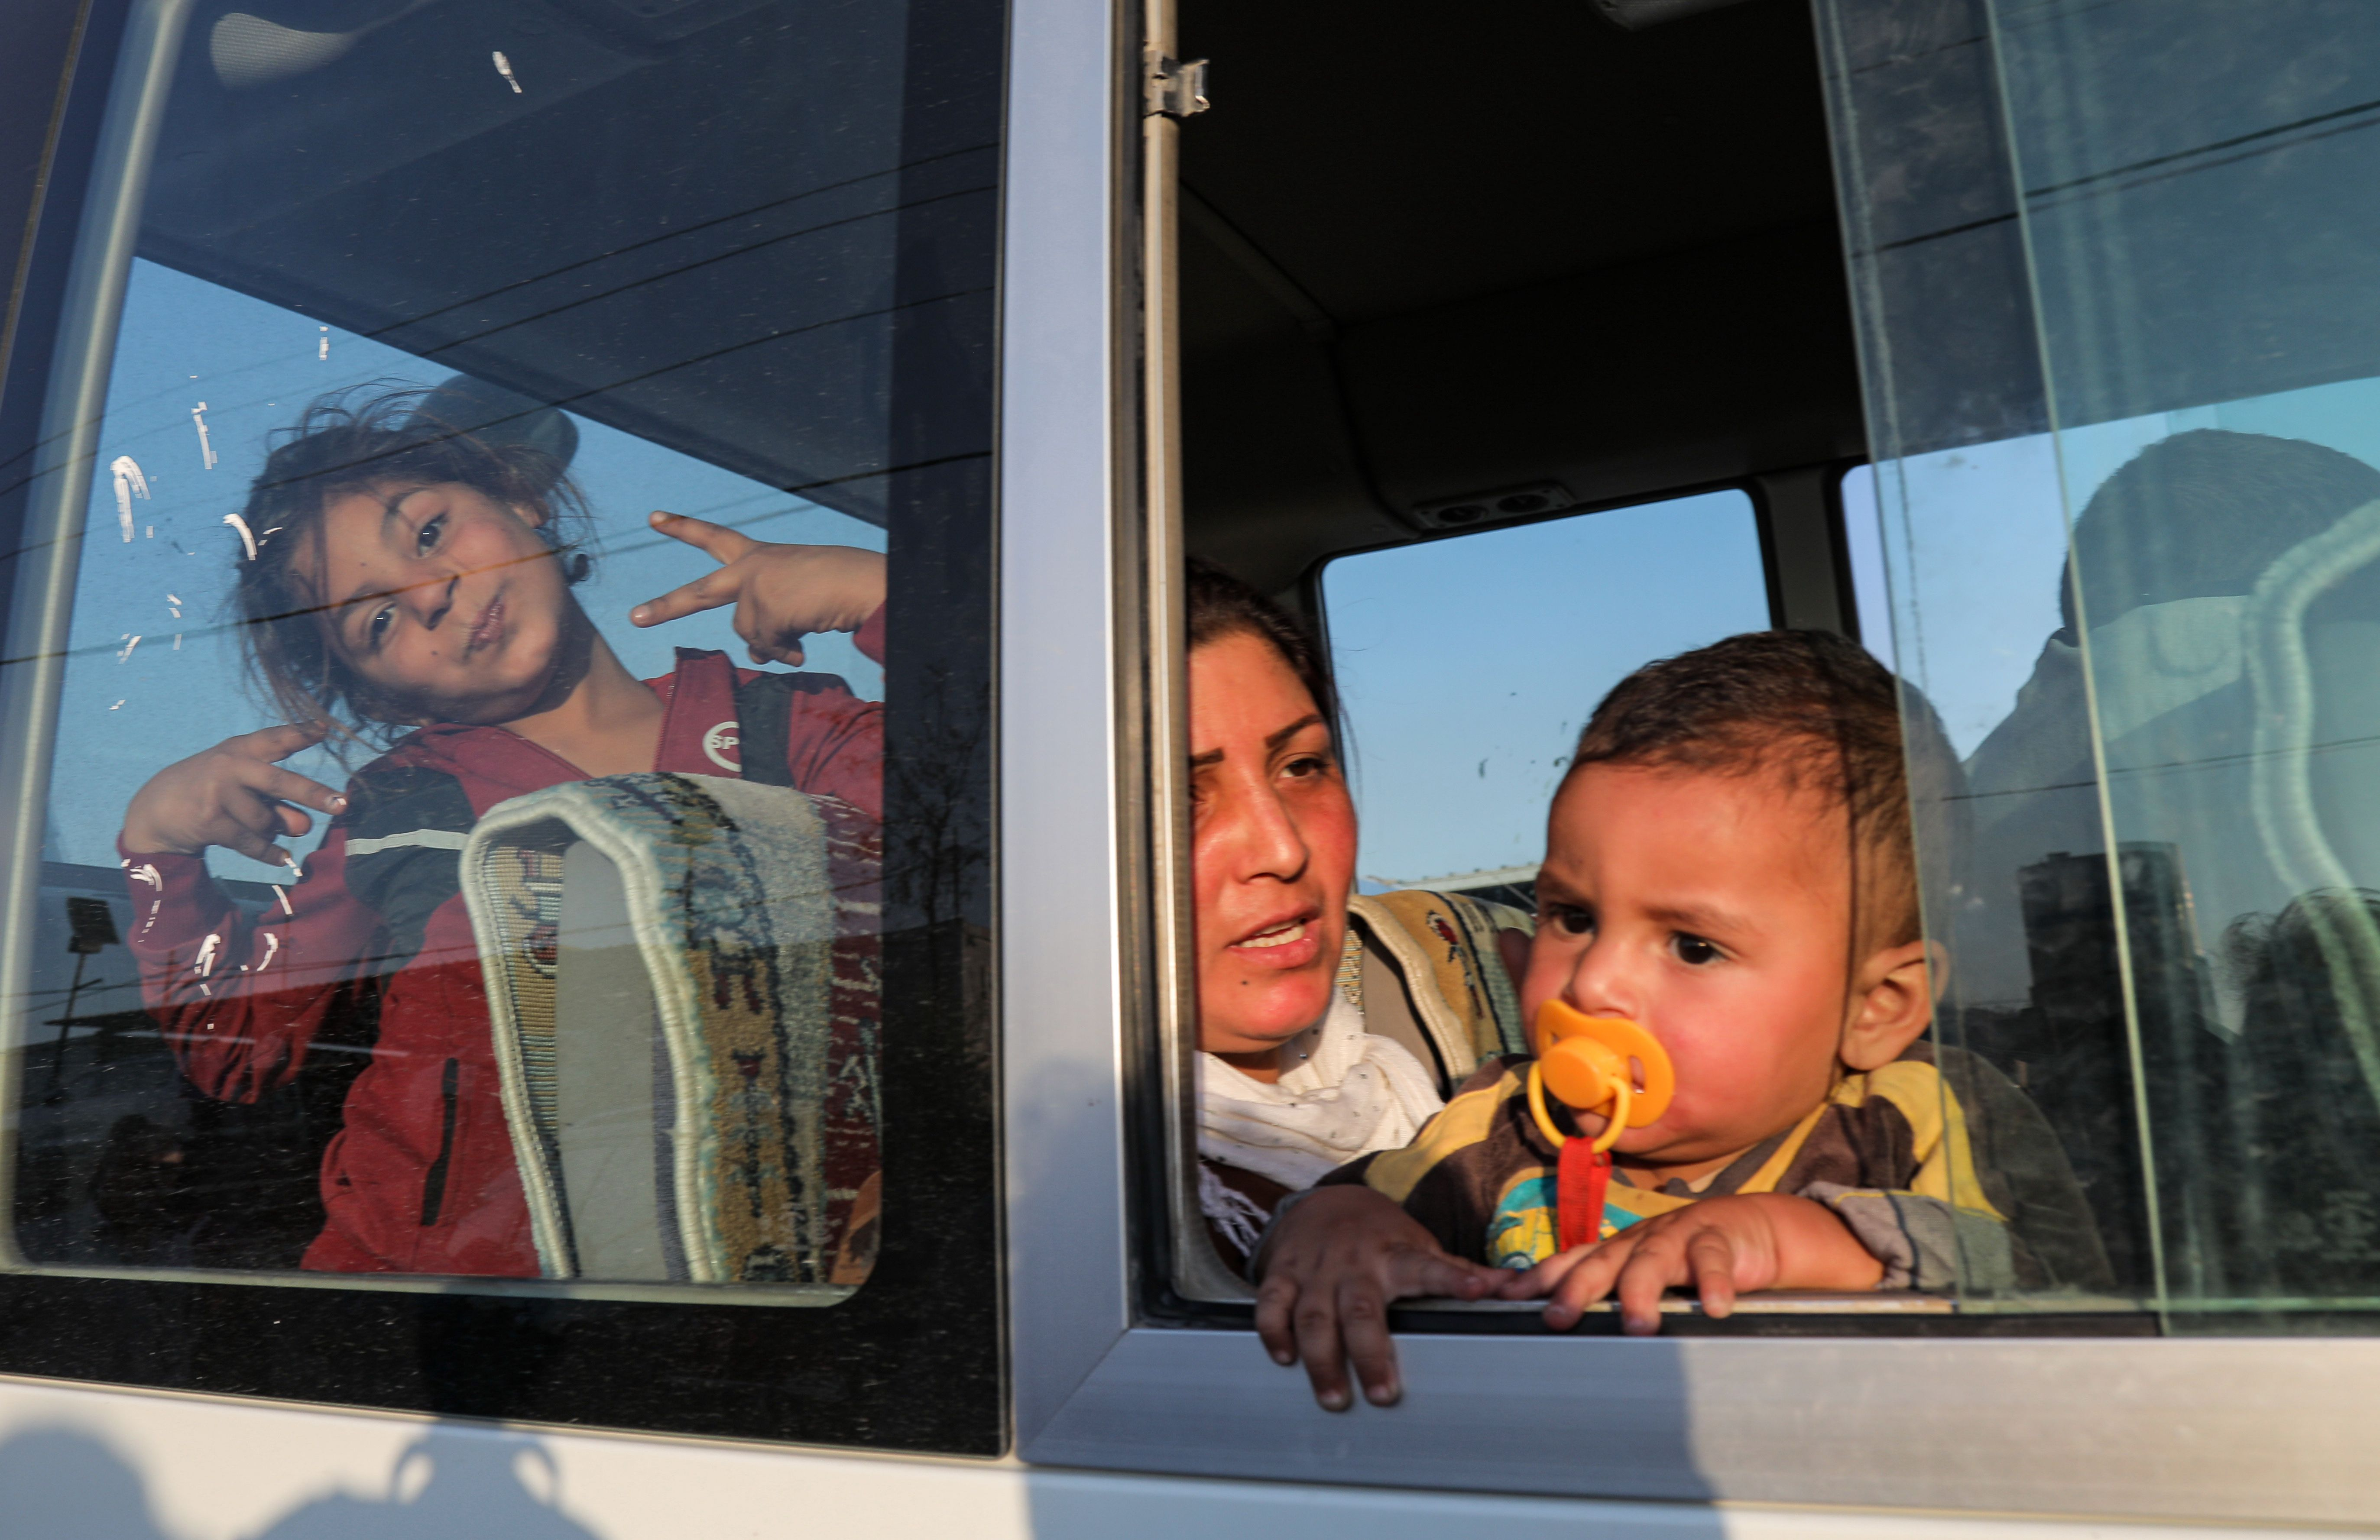 TOPSHOT - A woman holds a child while sitting in the back of a minibus transporting Syrians fleeing the ongoing Turkish military operation in northeastern Syria upon their arrival at the Bardarash camp, near the Kurdish city of Dohuk, in Iraq's autonomous Kurdish region, on October 16, 2019. - Some 500 Syrian Kurds have entered neighbouring Iraqi Kurdistan over the past four days fleeing a Turkish invasion now entering its second week, officials said. Iraqi Kurdistan previously hosted more than one million Iraqis who fled fighting with the jihadists of the Islamic State group between 2014 and 2017. (Photo by Safin HAMED / AFP) (Photo by SAFIN HAMED/AFP via Getty Images)